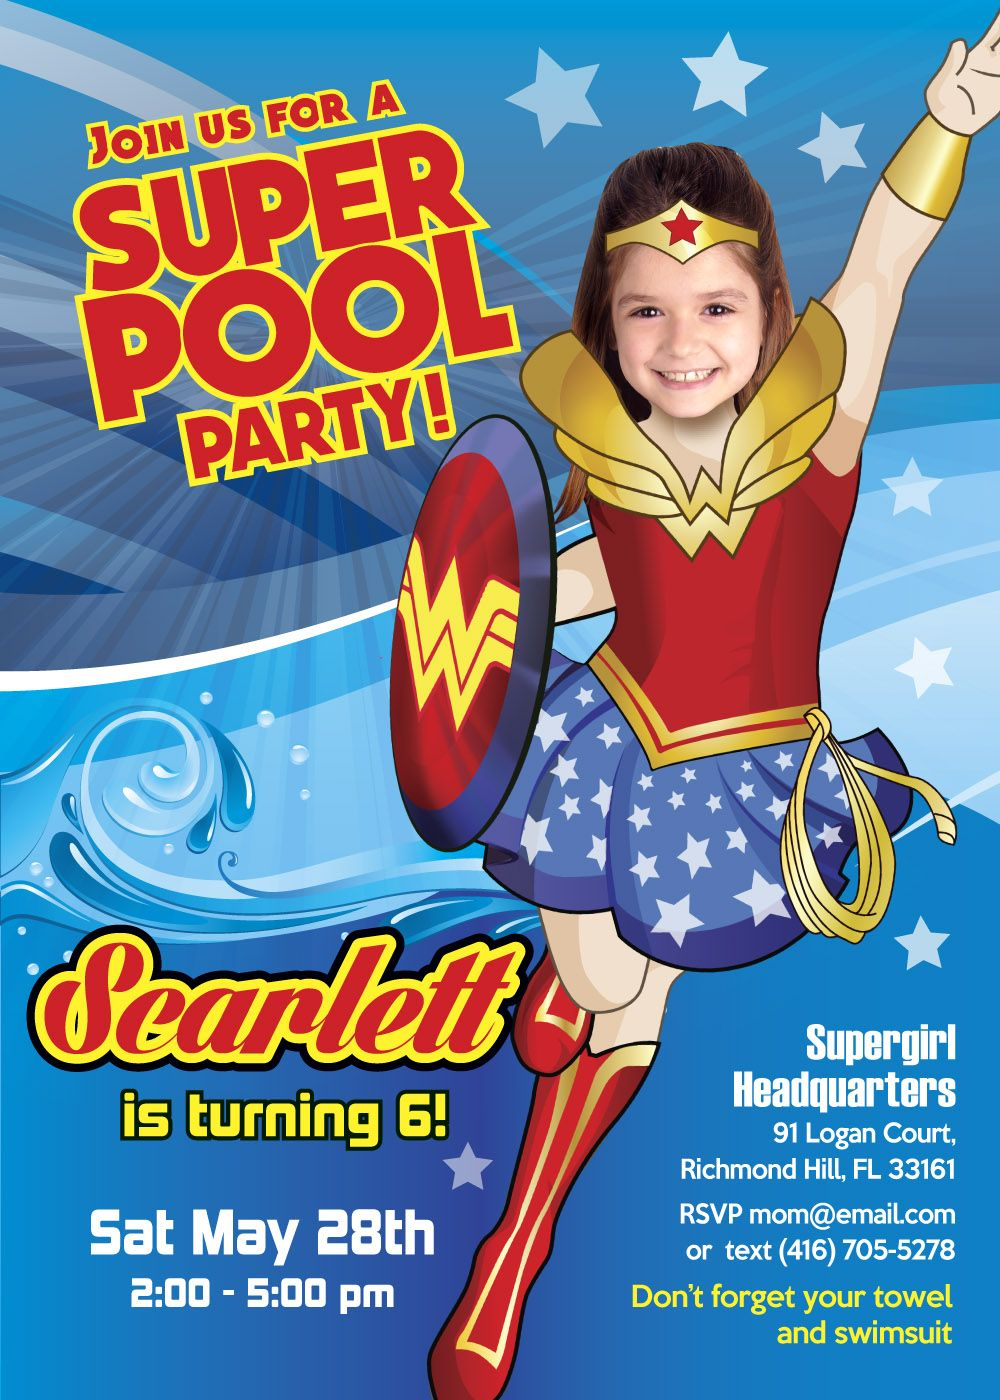 Pool Party Wonder Woman Invitation Turn Your Little Girl -5314